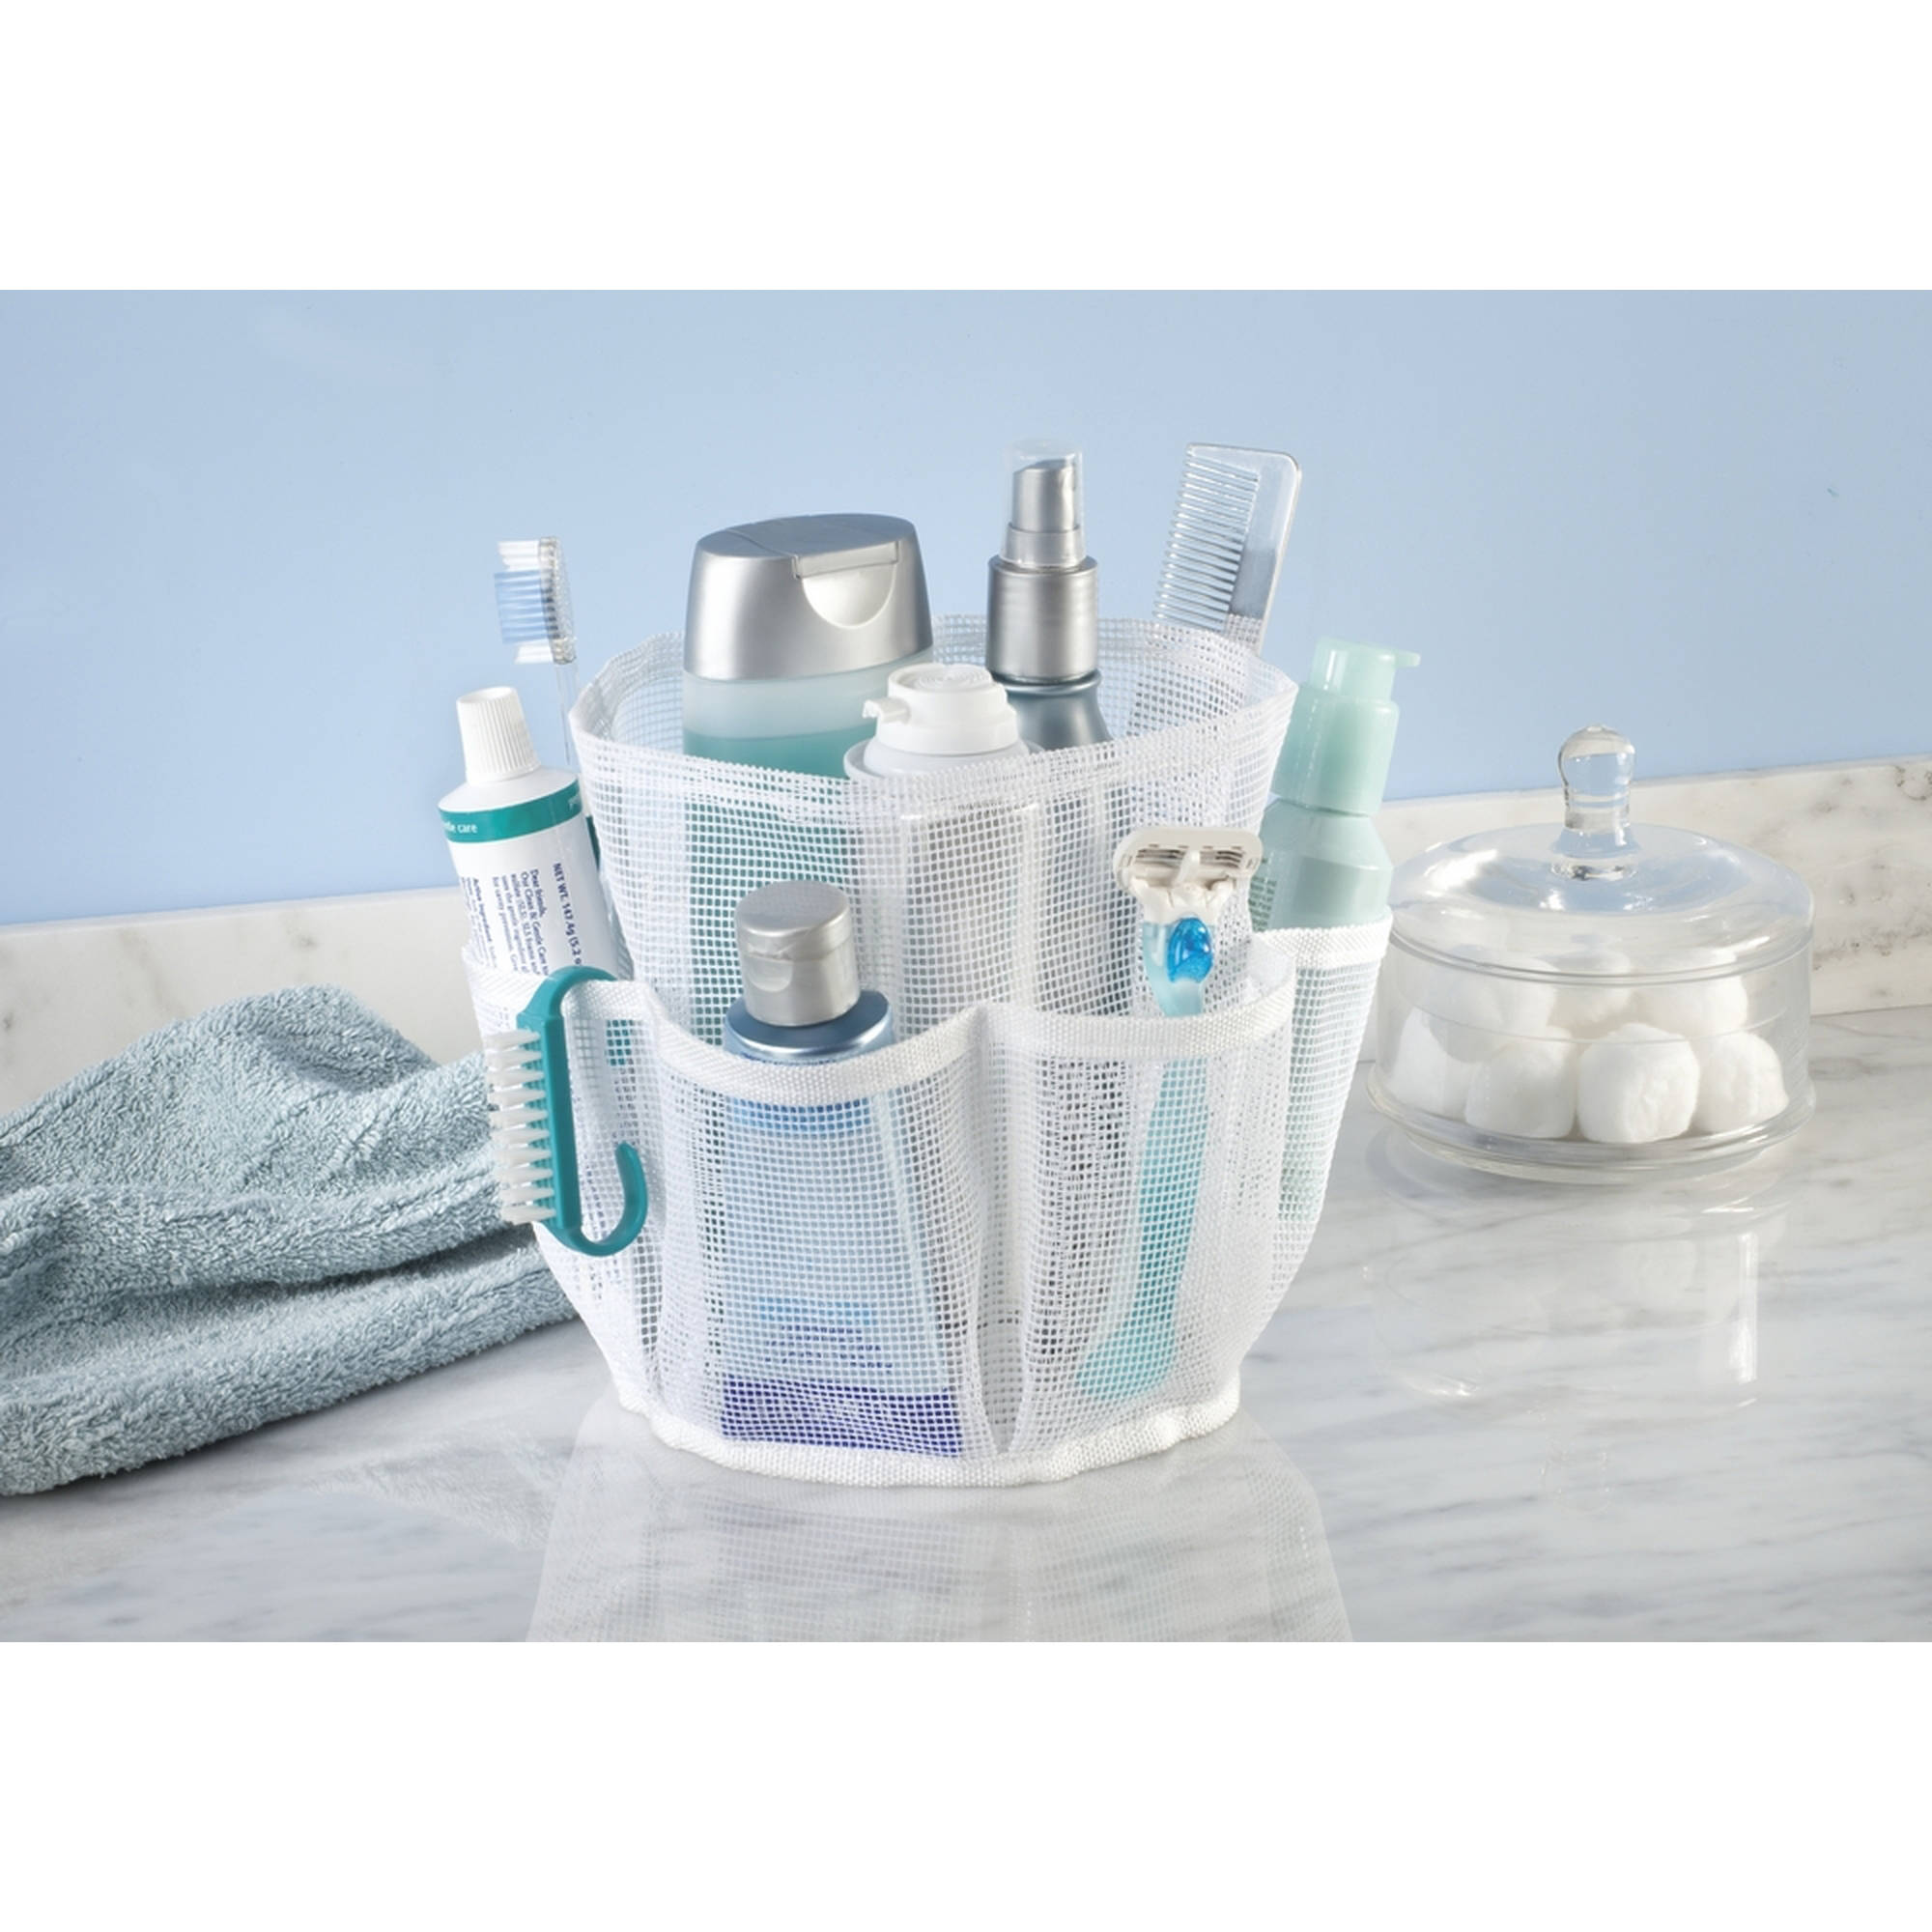 InterDesign Una Bathroom Shower Caddy, Mesh, White by INTERDESIGN